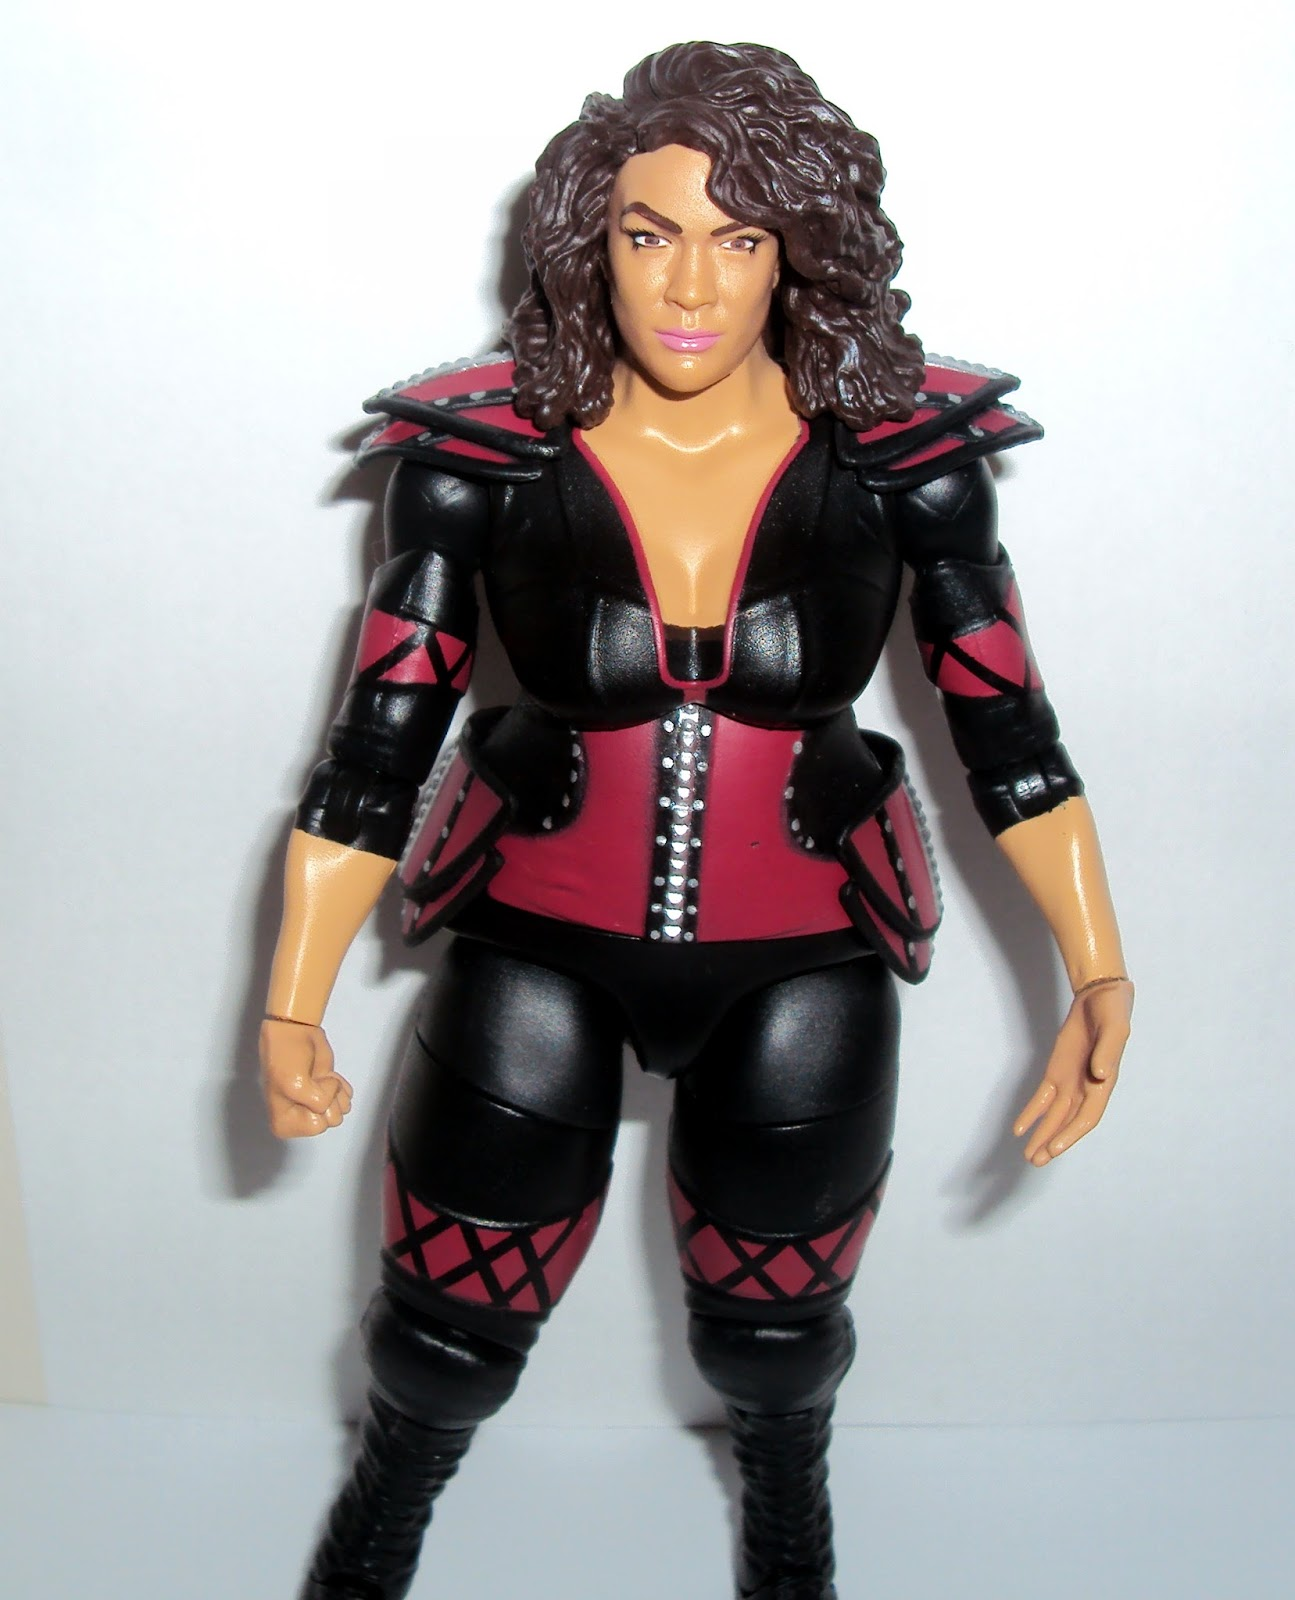 Wwe Girl Toys : Action figure imagery toy reviews wwe mattel nia jax